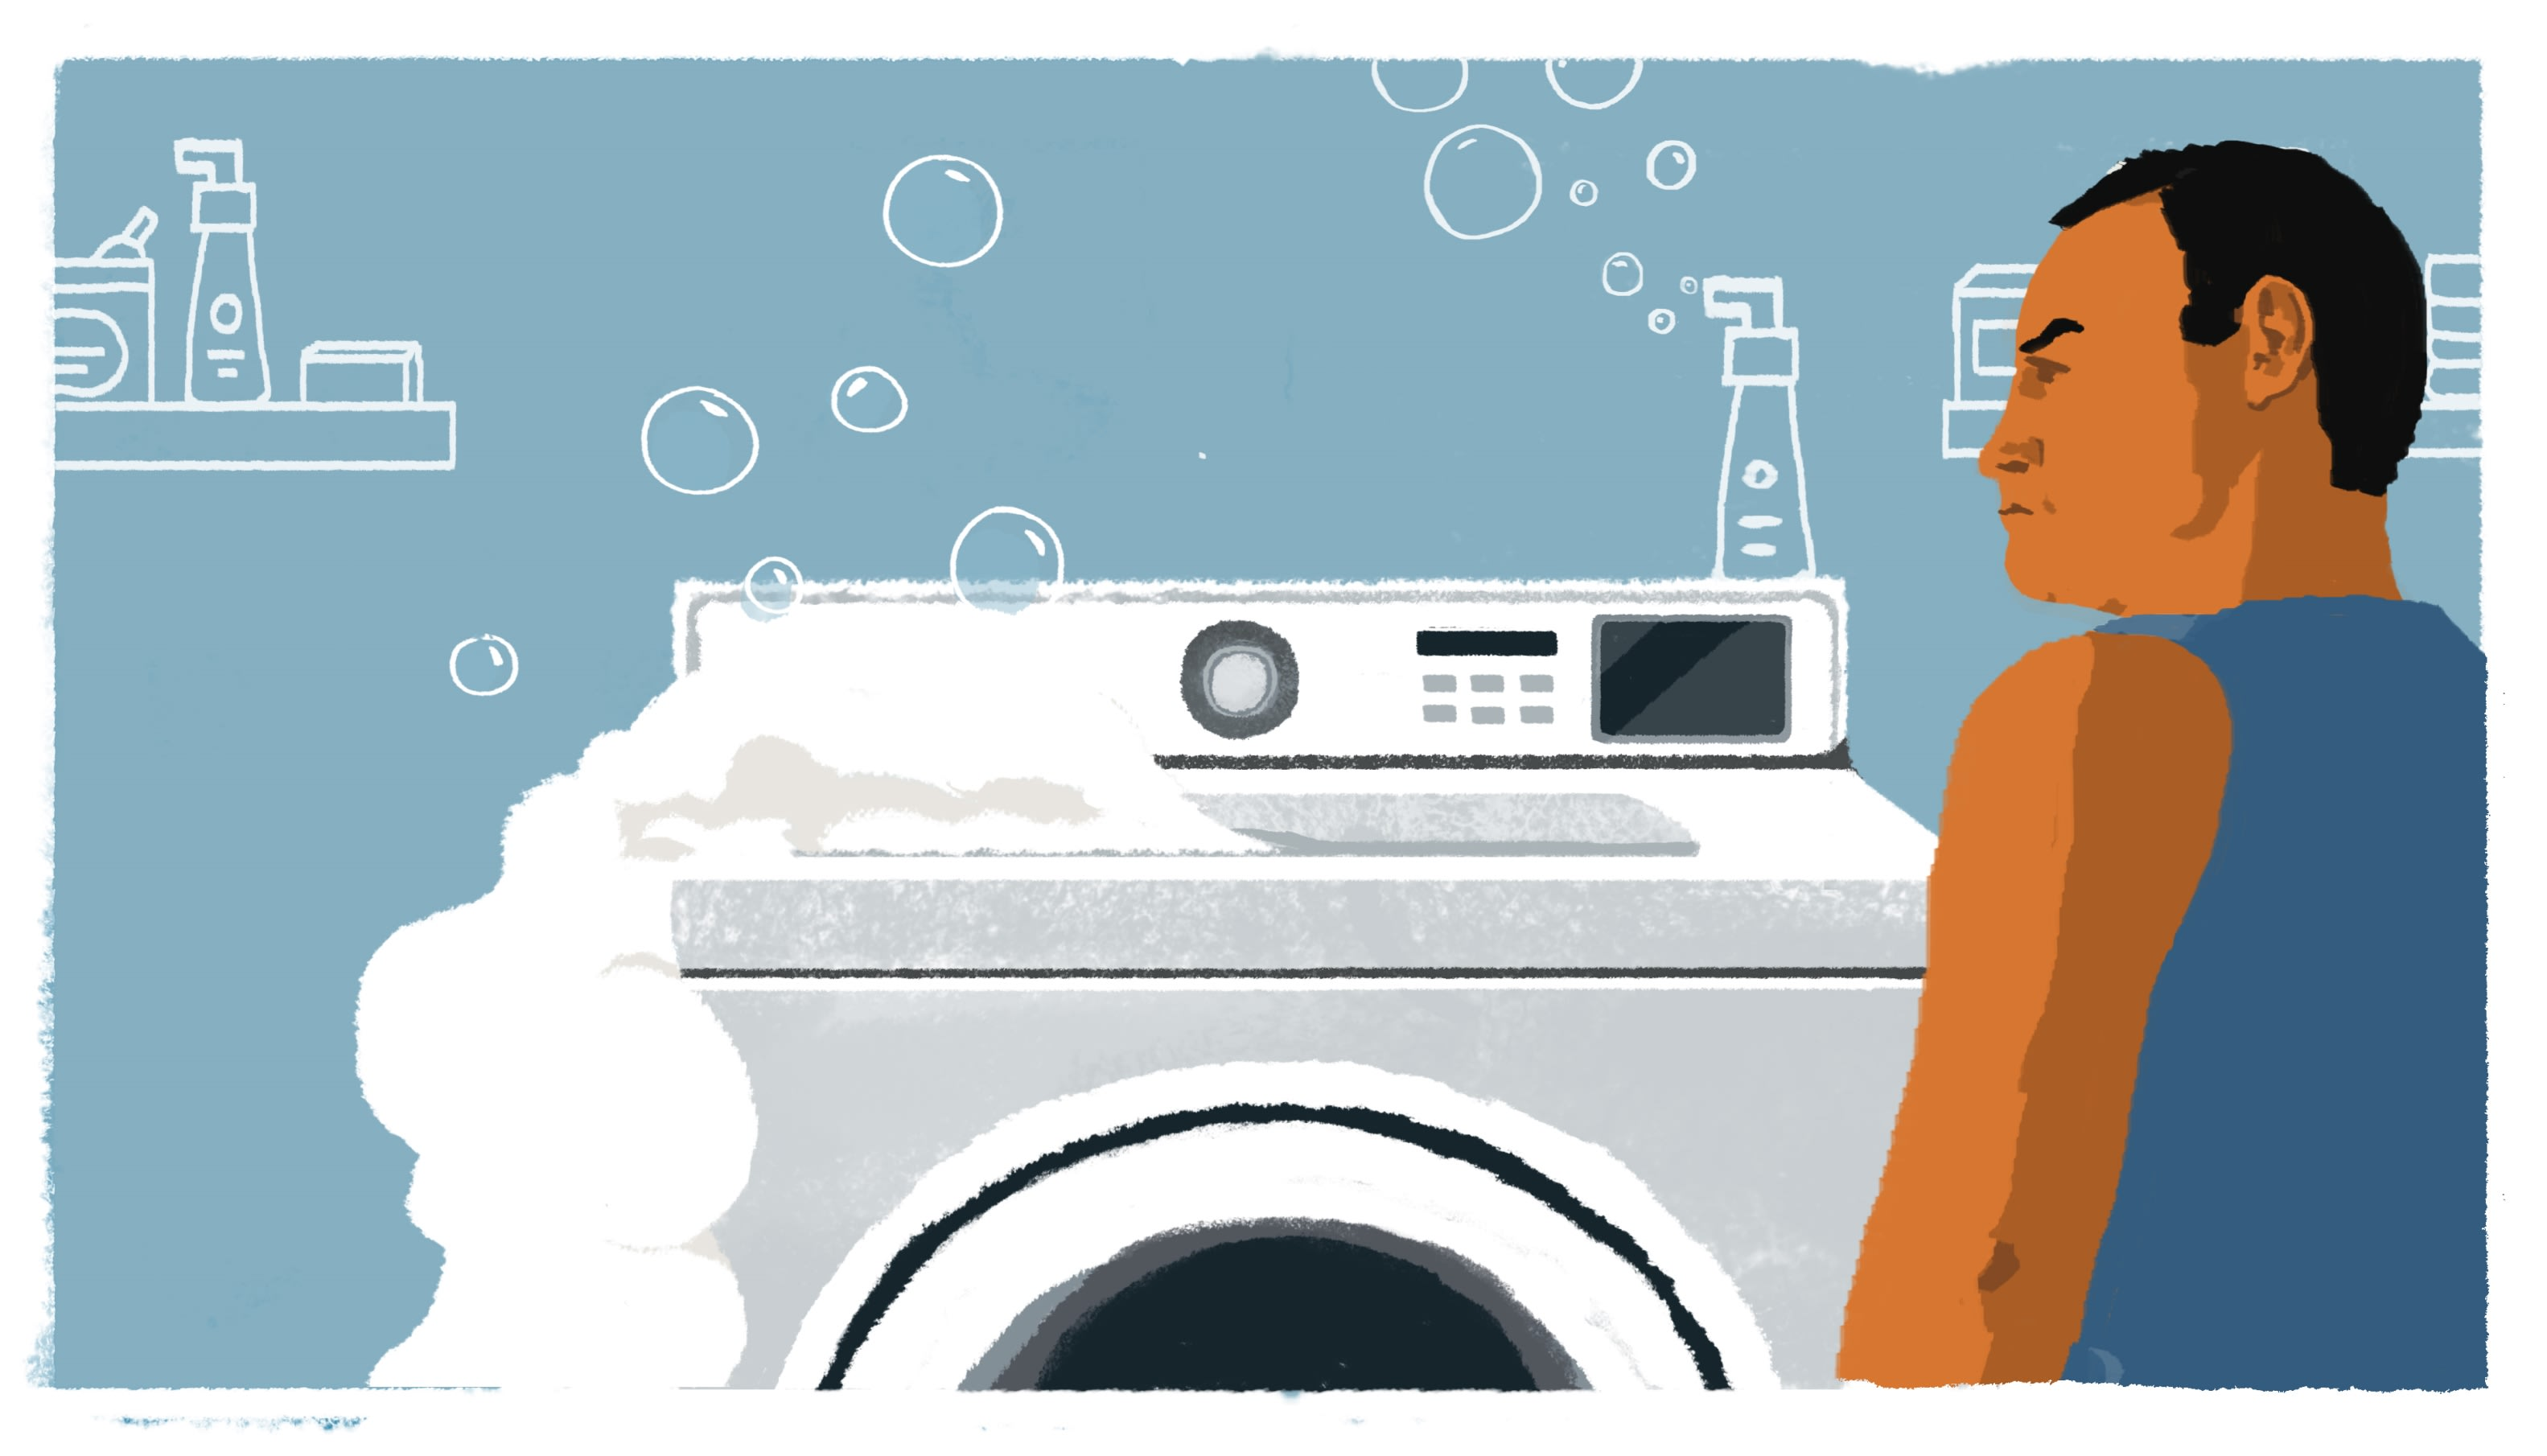 noble-trainer-illustration-laundry